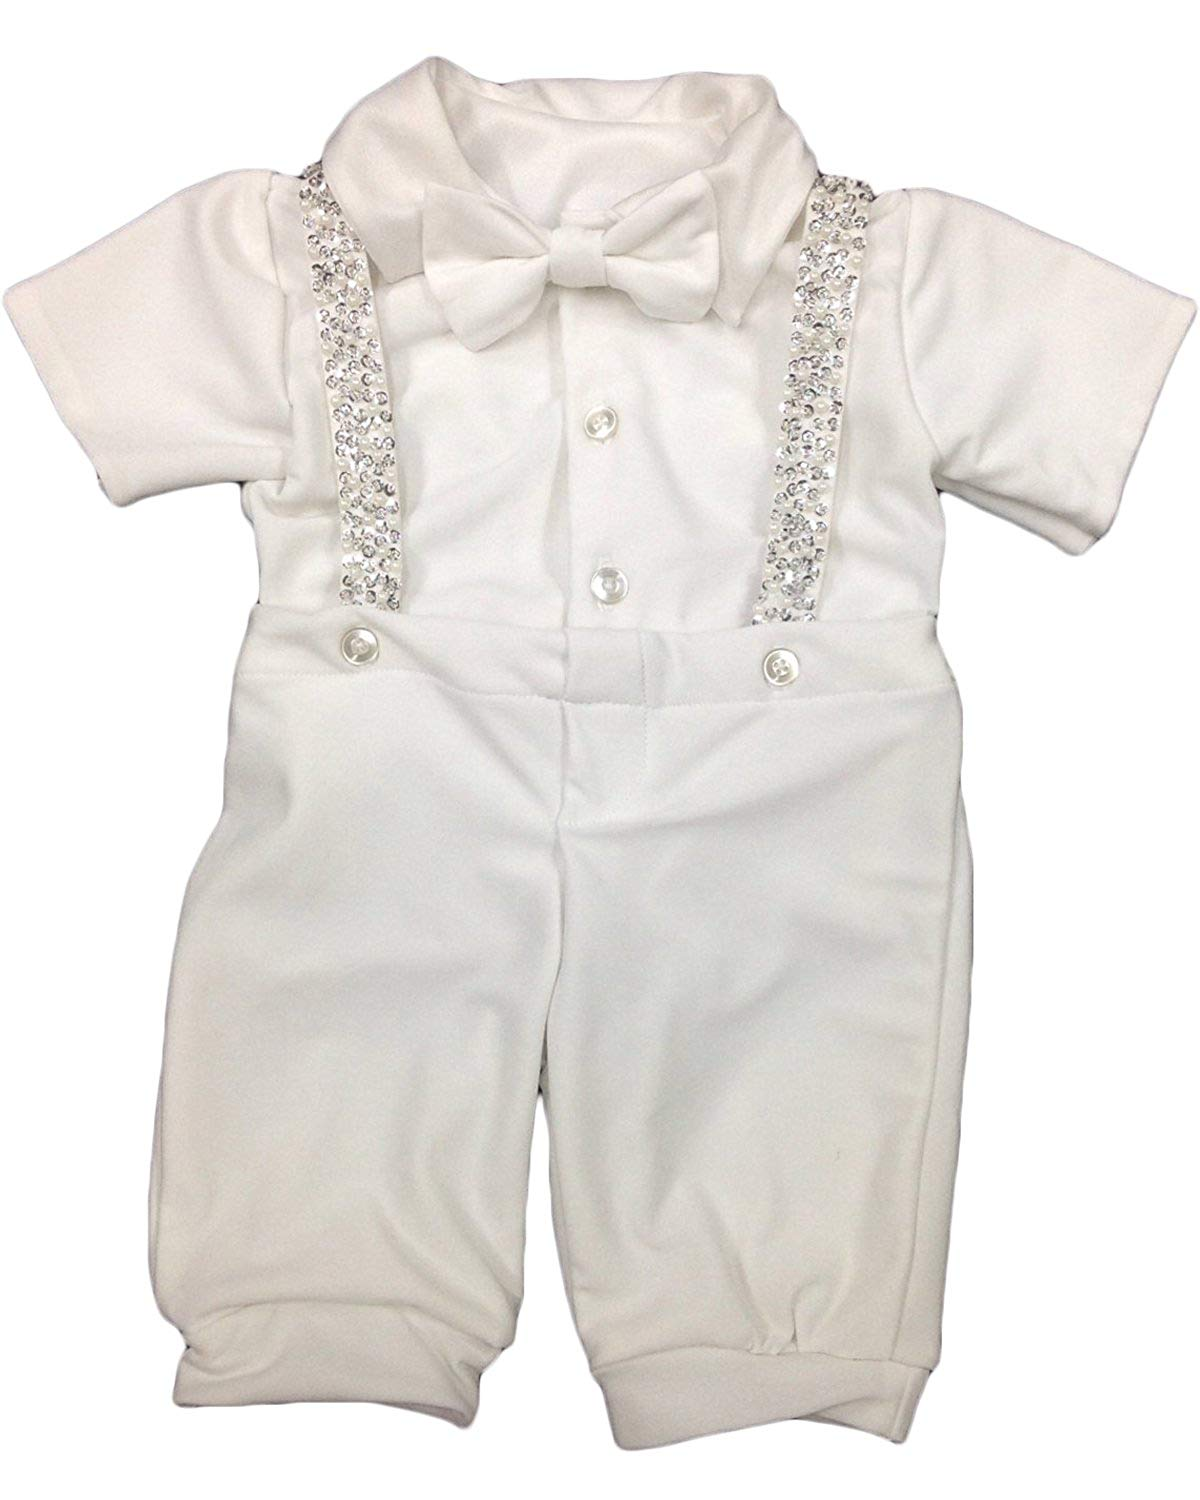 8376897c3 Get Quotations · Newdeve Baby-boys Christening Outfits Long Baptism Gowns  For Todder